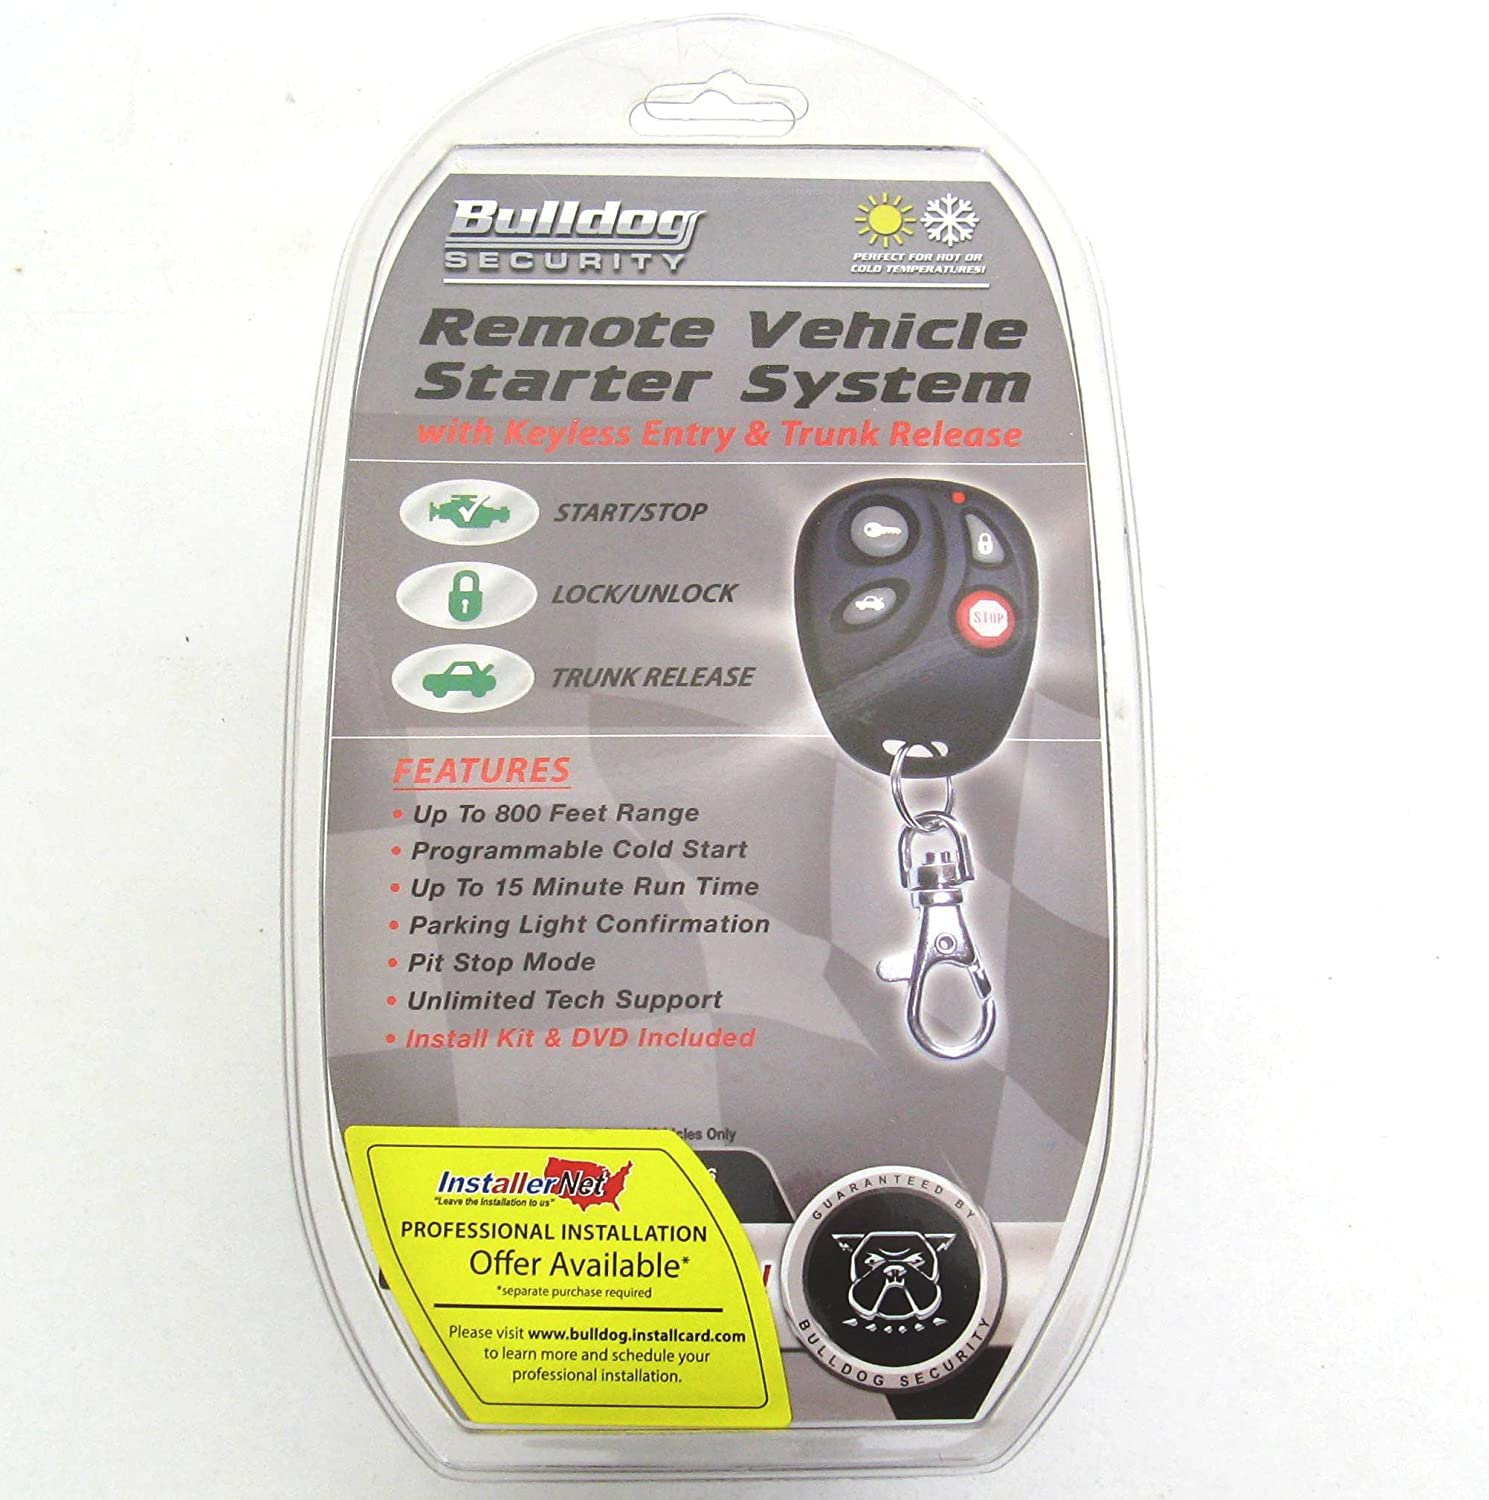 Awesome Bulldog Security Remote Starter With Keyless Entry Thick Super Switch Wiring Square Security Bulldog Ibanez Dimarzio Youthful Bulldog Alarms Wiring YellowOff Grid Solar Wiring Diagram Magnificent Bulldog Remote Vehicle Starter System Images ..